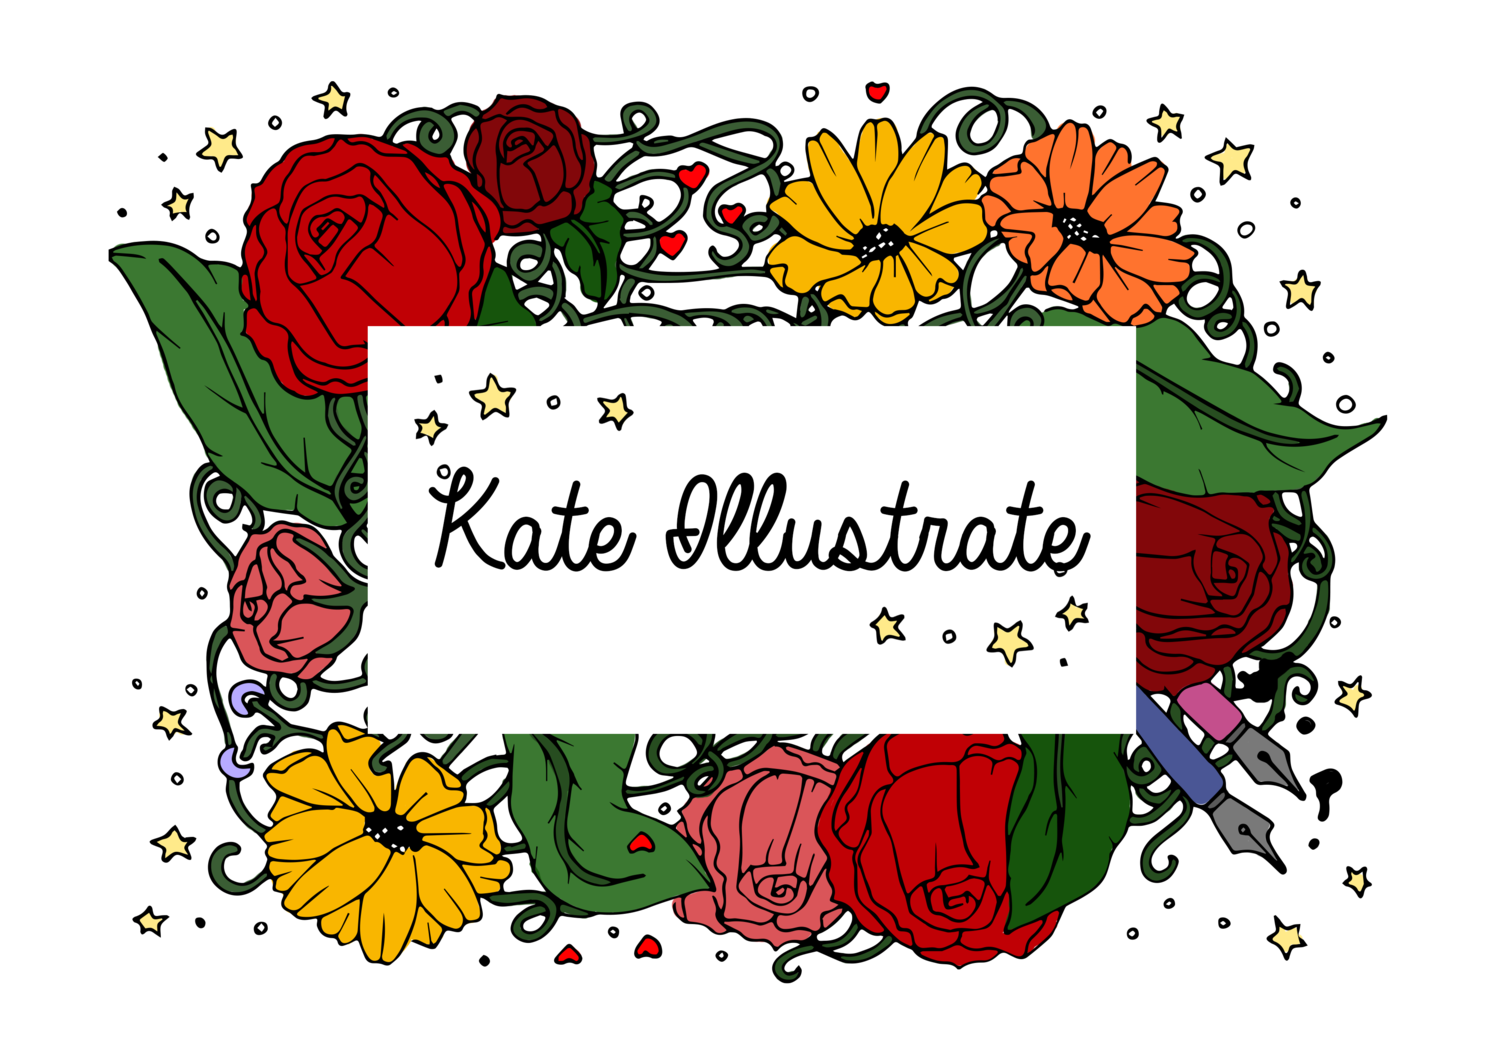 Kate Illustrate